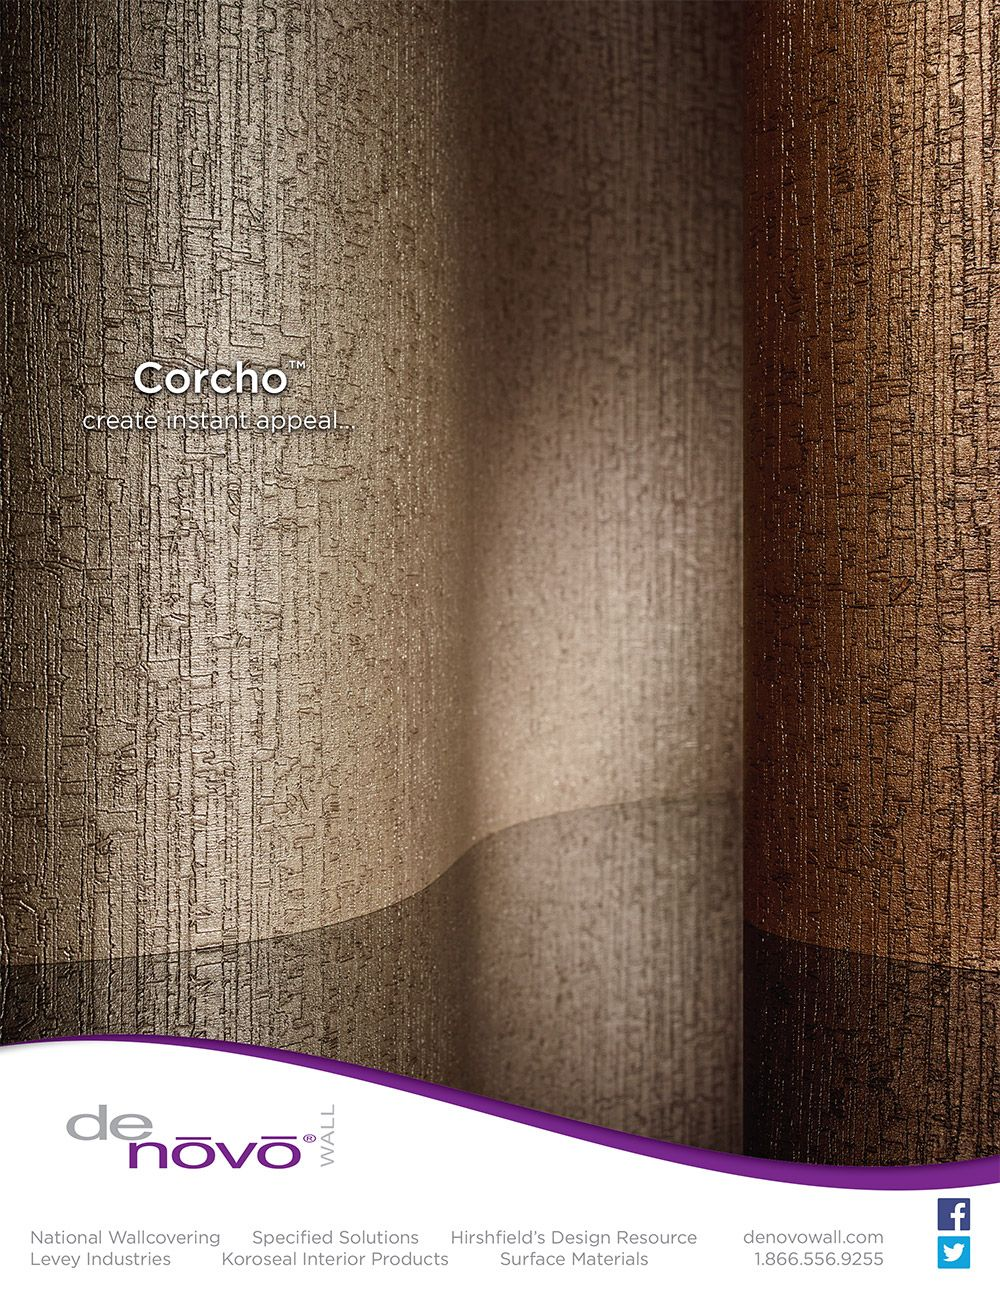 DeNovo Walls CorchoTM Commercial Wallcovering Advertisement In The Interior Design Magazine February 2015 Issue